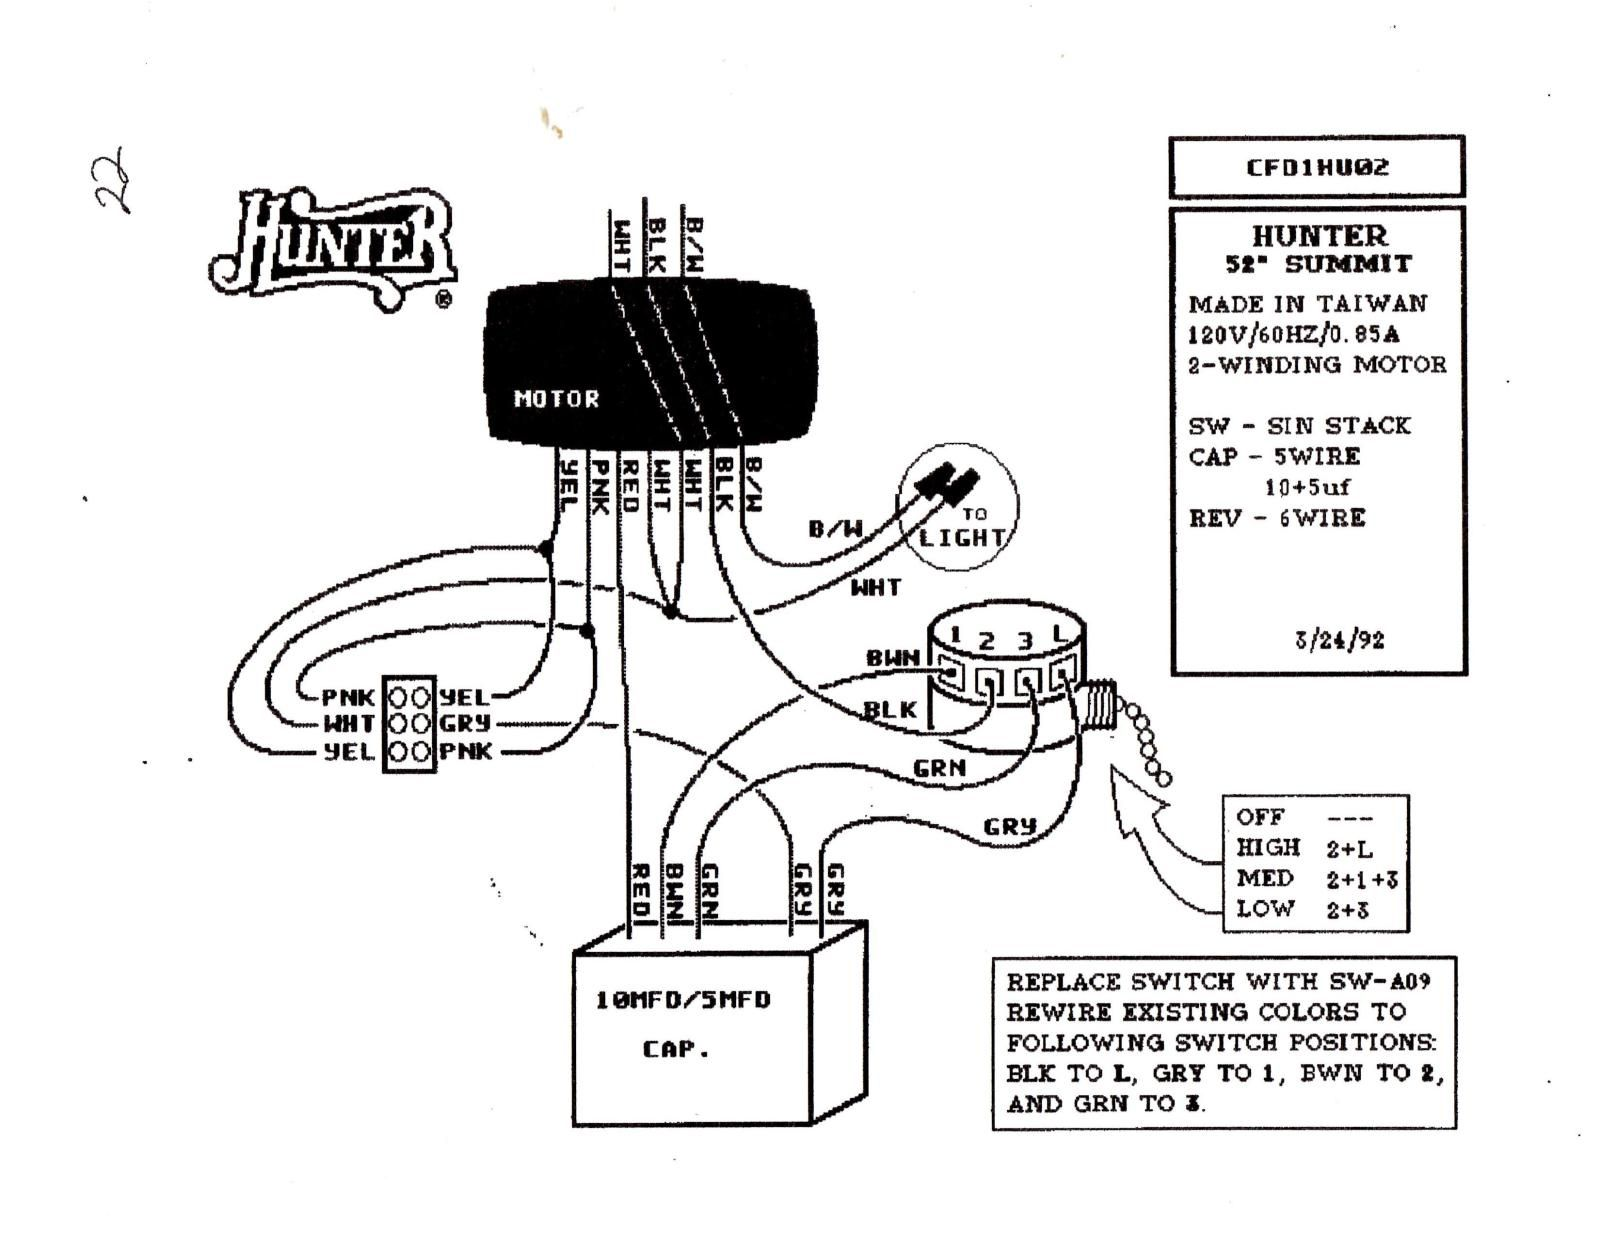 hunter ceiling fan speed switch wiring diagram switch pinterest hunter fan wiring diagram for fan and remote hunter ceiling fan switch light wiring diagram [ 1600 x 1236 Pixel ]